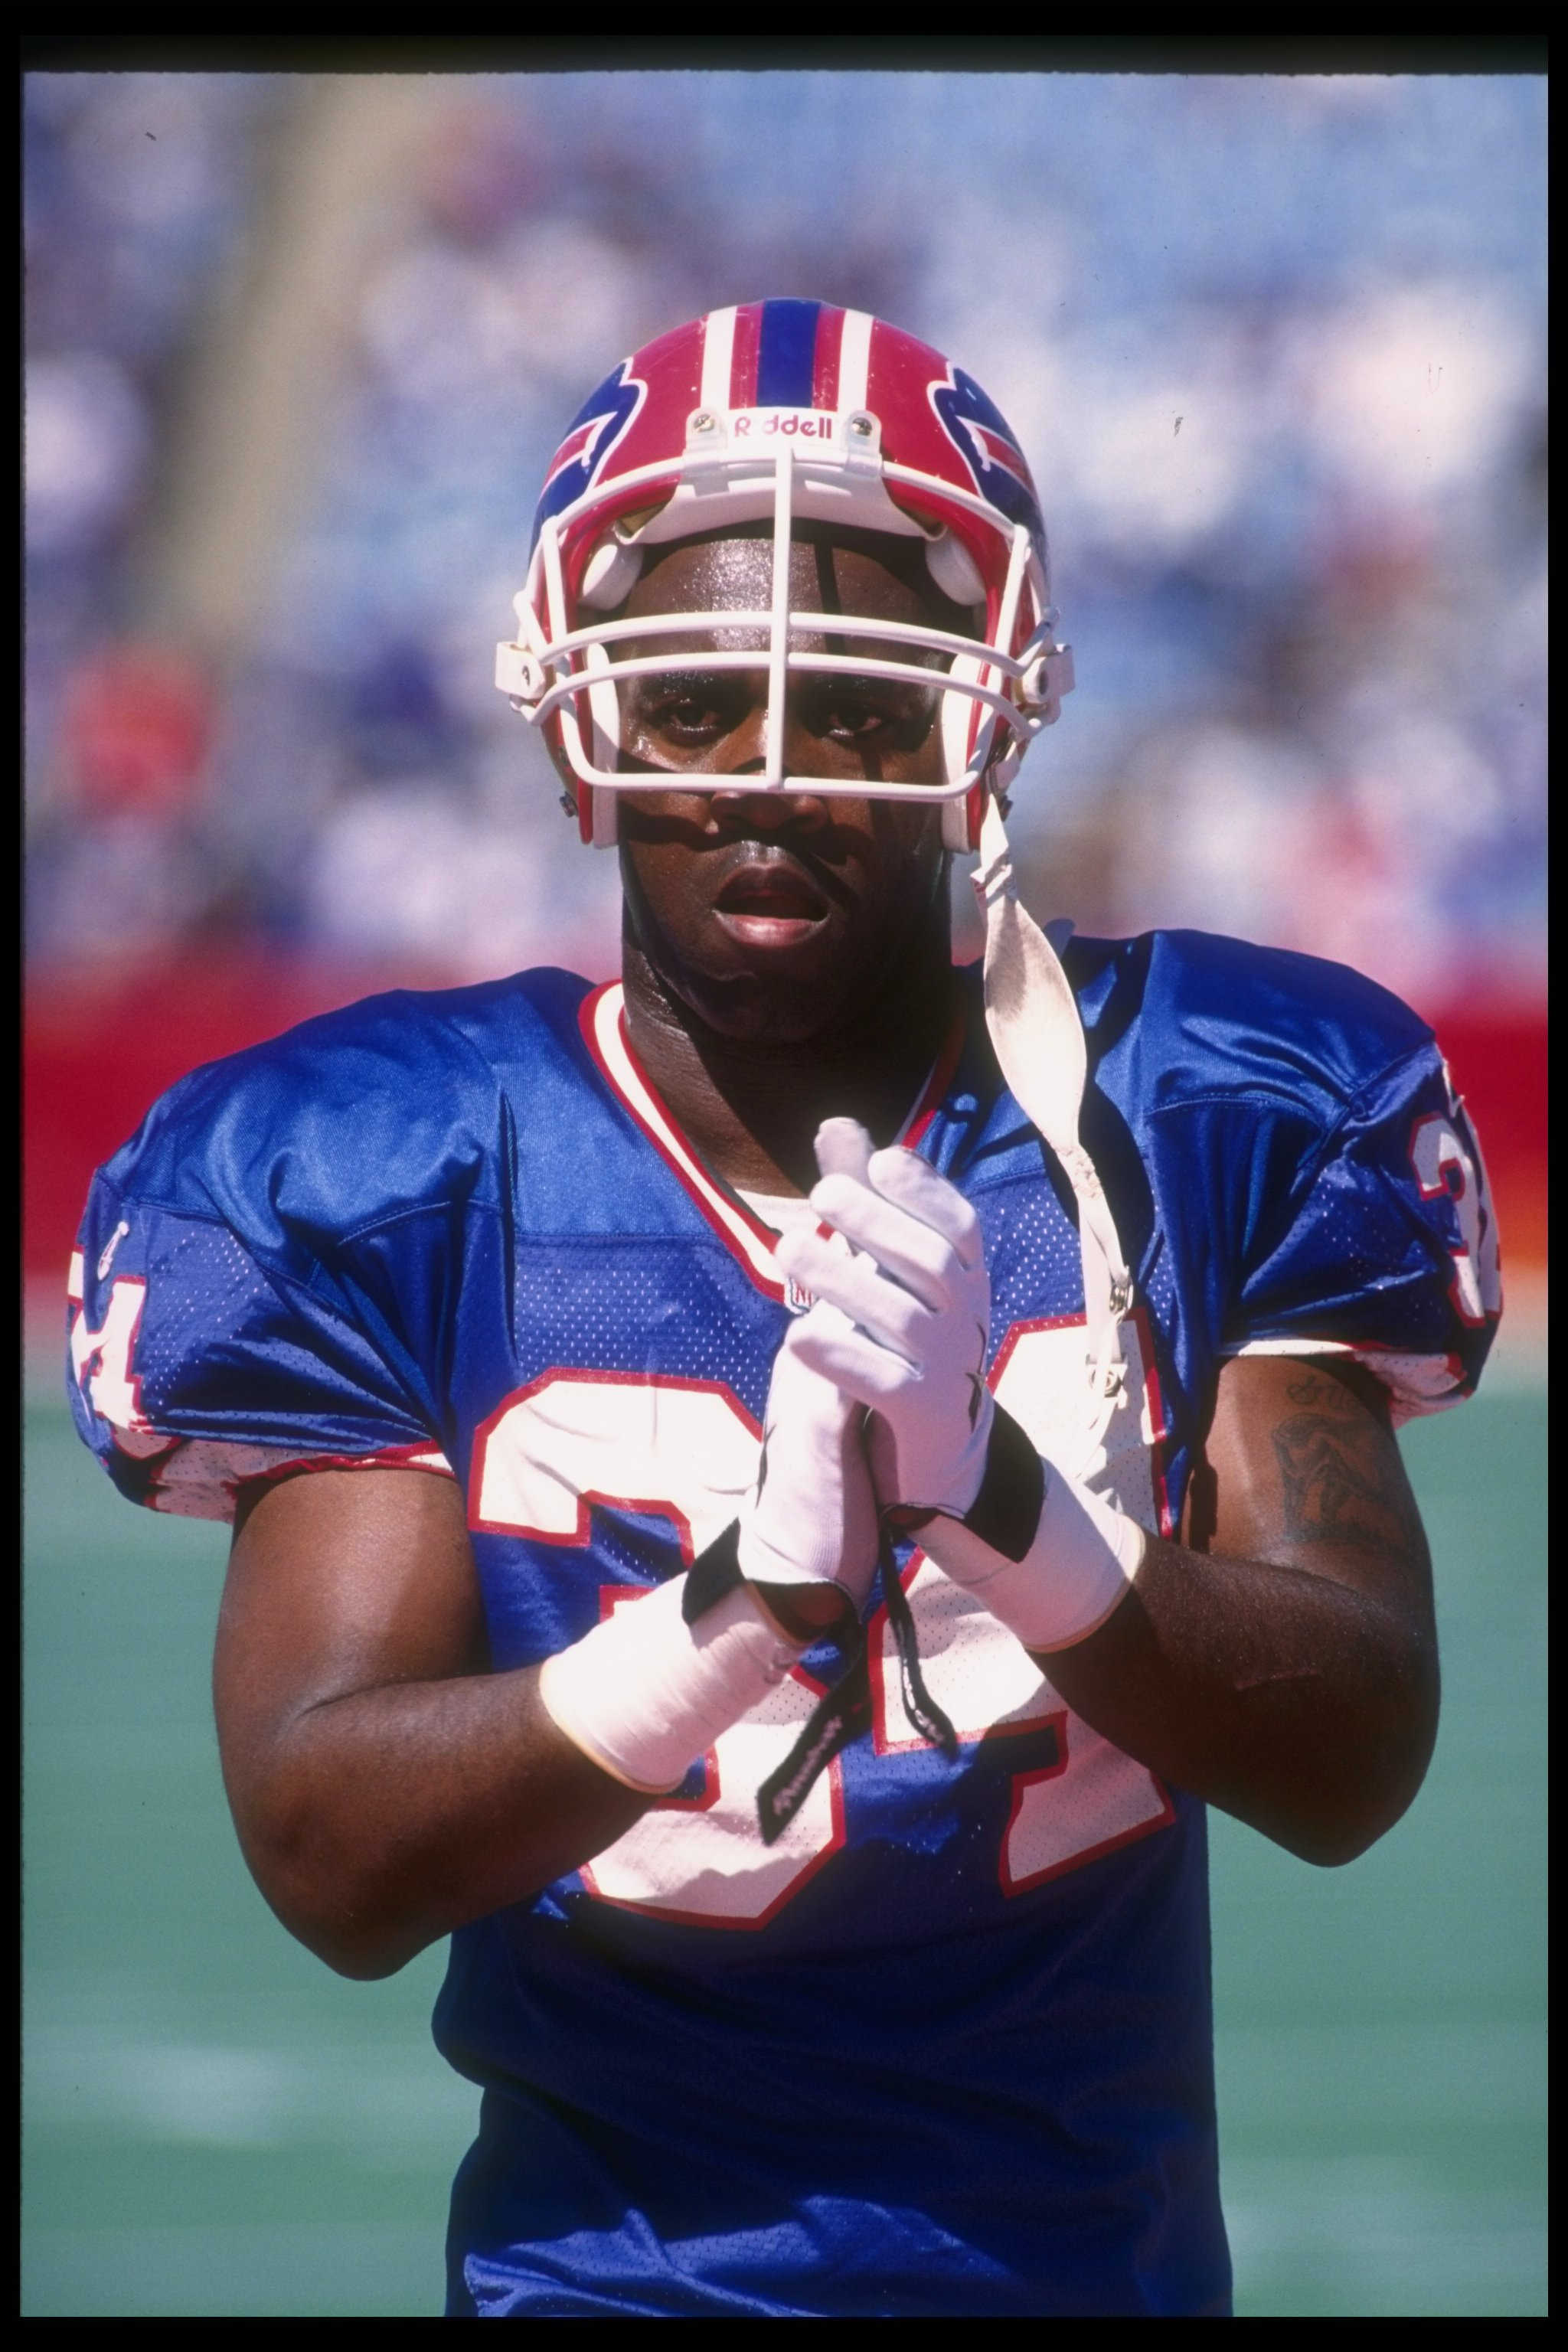 10 Sep 1995: Running back Thurman Thomas of the Buffalo Bills looks on during a game against the Carolina Panthers at Rich Stadium in Orchard Park, New York. The Bills won the game, 31-9.